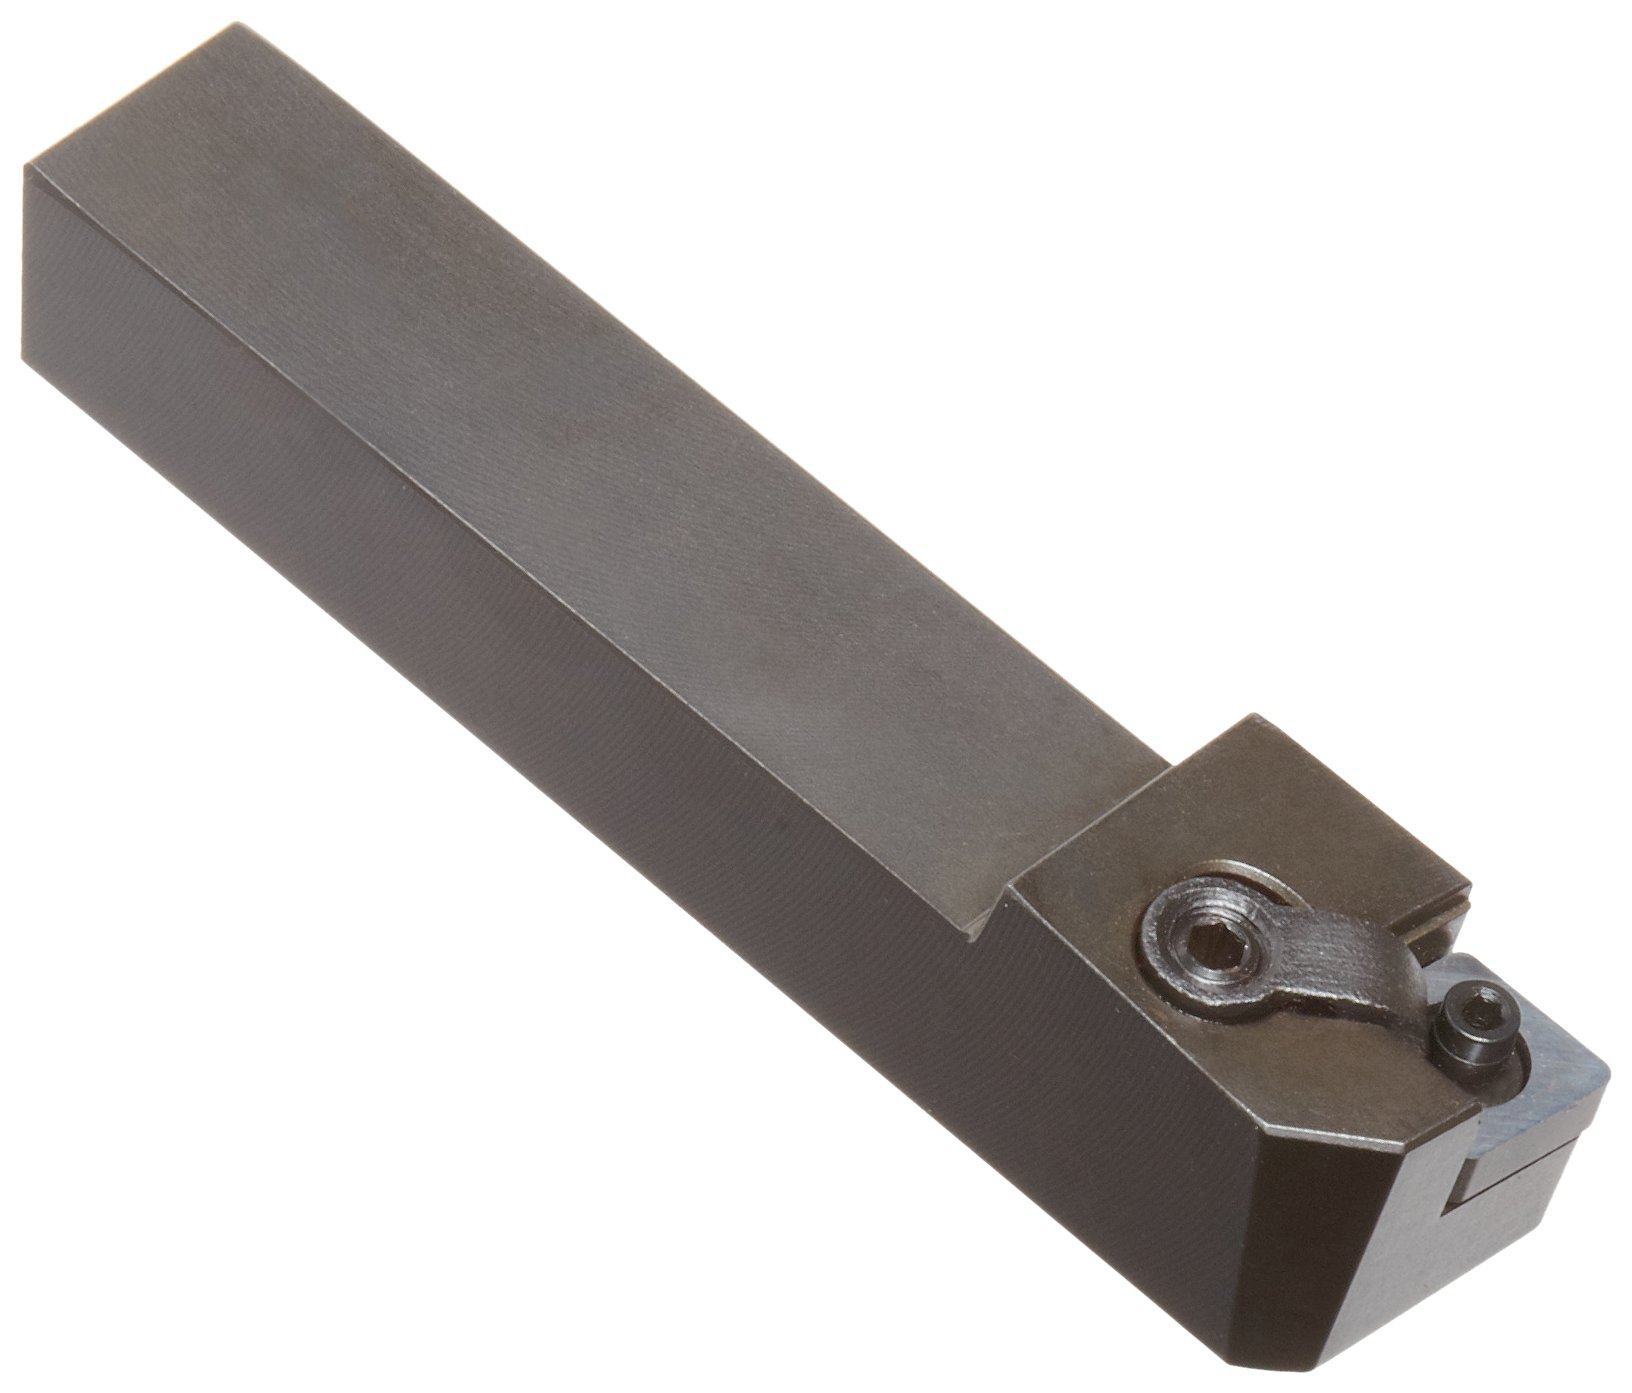 Dorian Tool MCLN Square Shank Multi-Lock Turning Holder, Right Hand Cut, 3/4'' Shank Width, 3/4'' Shank Height, 4-1/2'' Overall Length, 1/2'' Insert